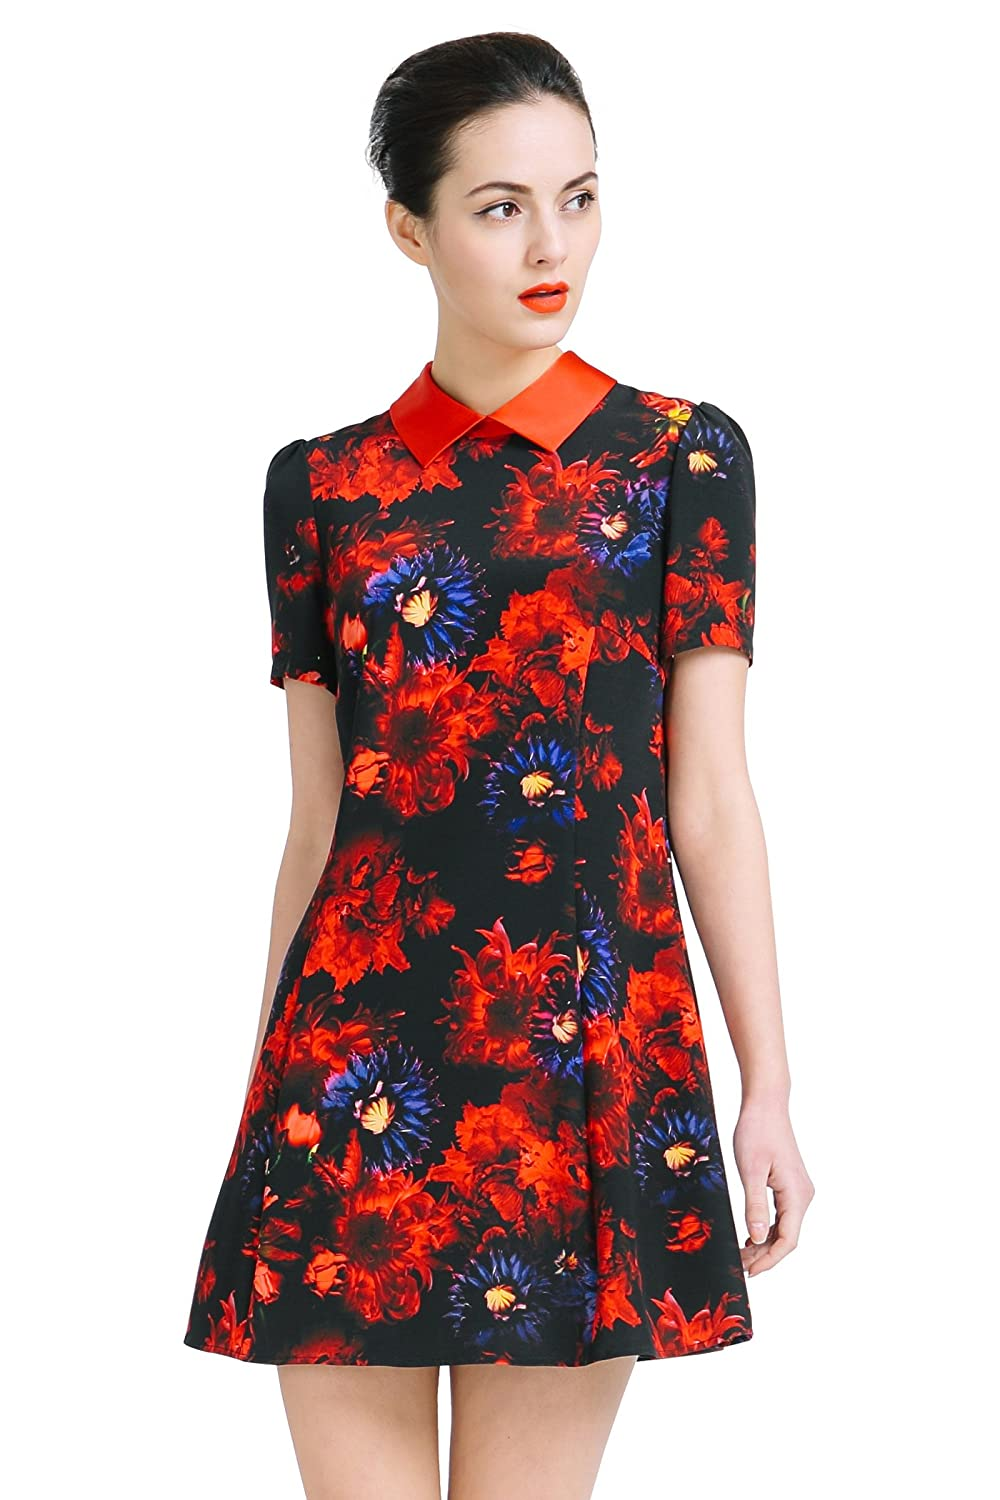 VOA Women's Silk Red Floral Print Short Sleeve Shirt Mini Dress A6812